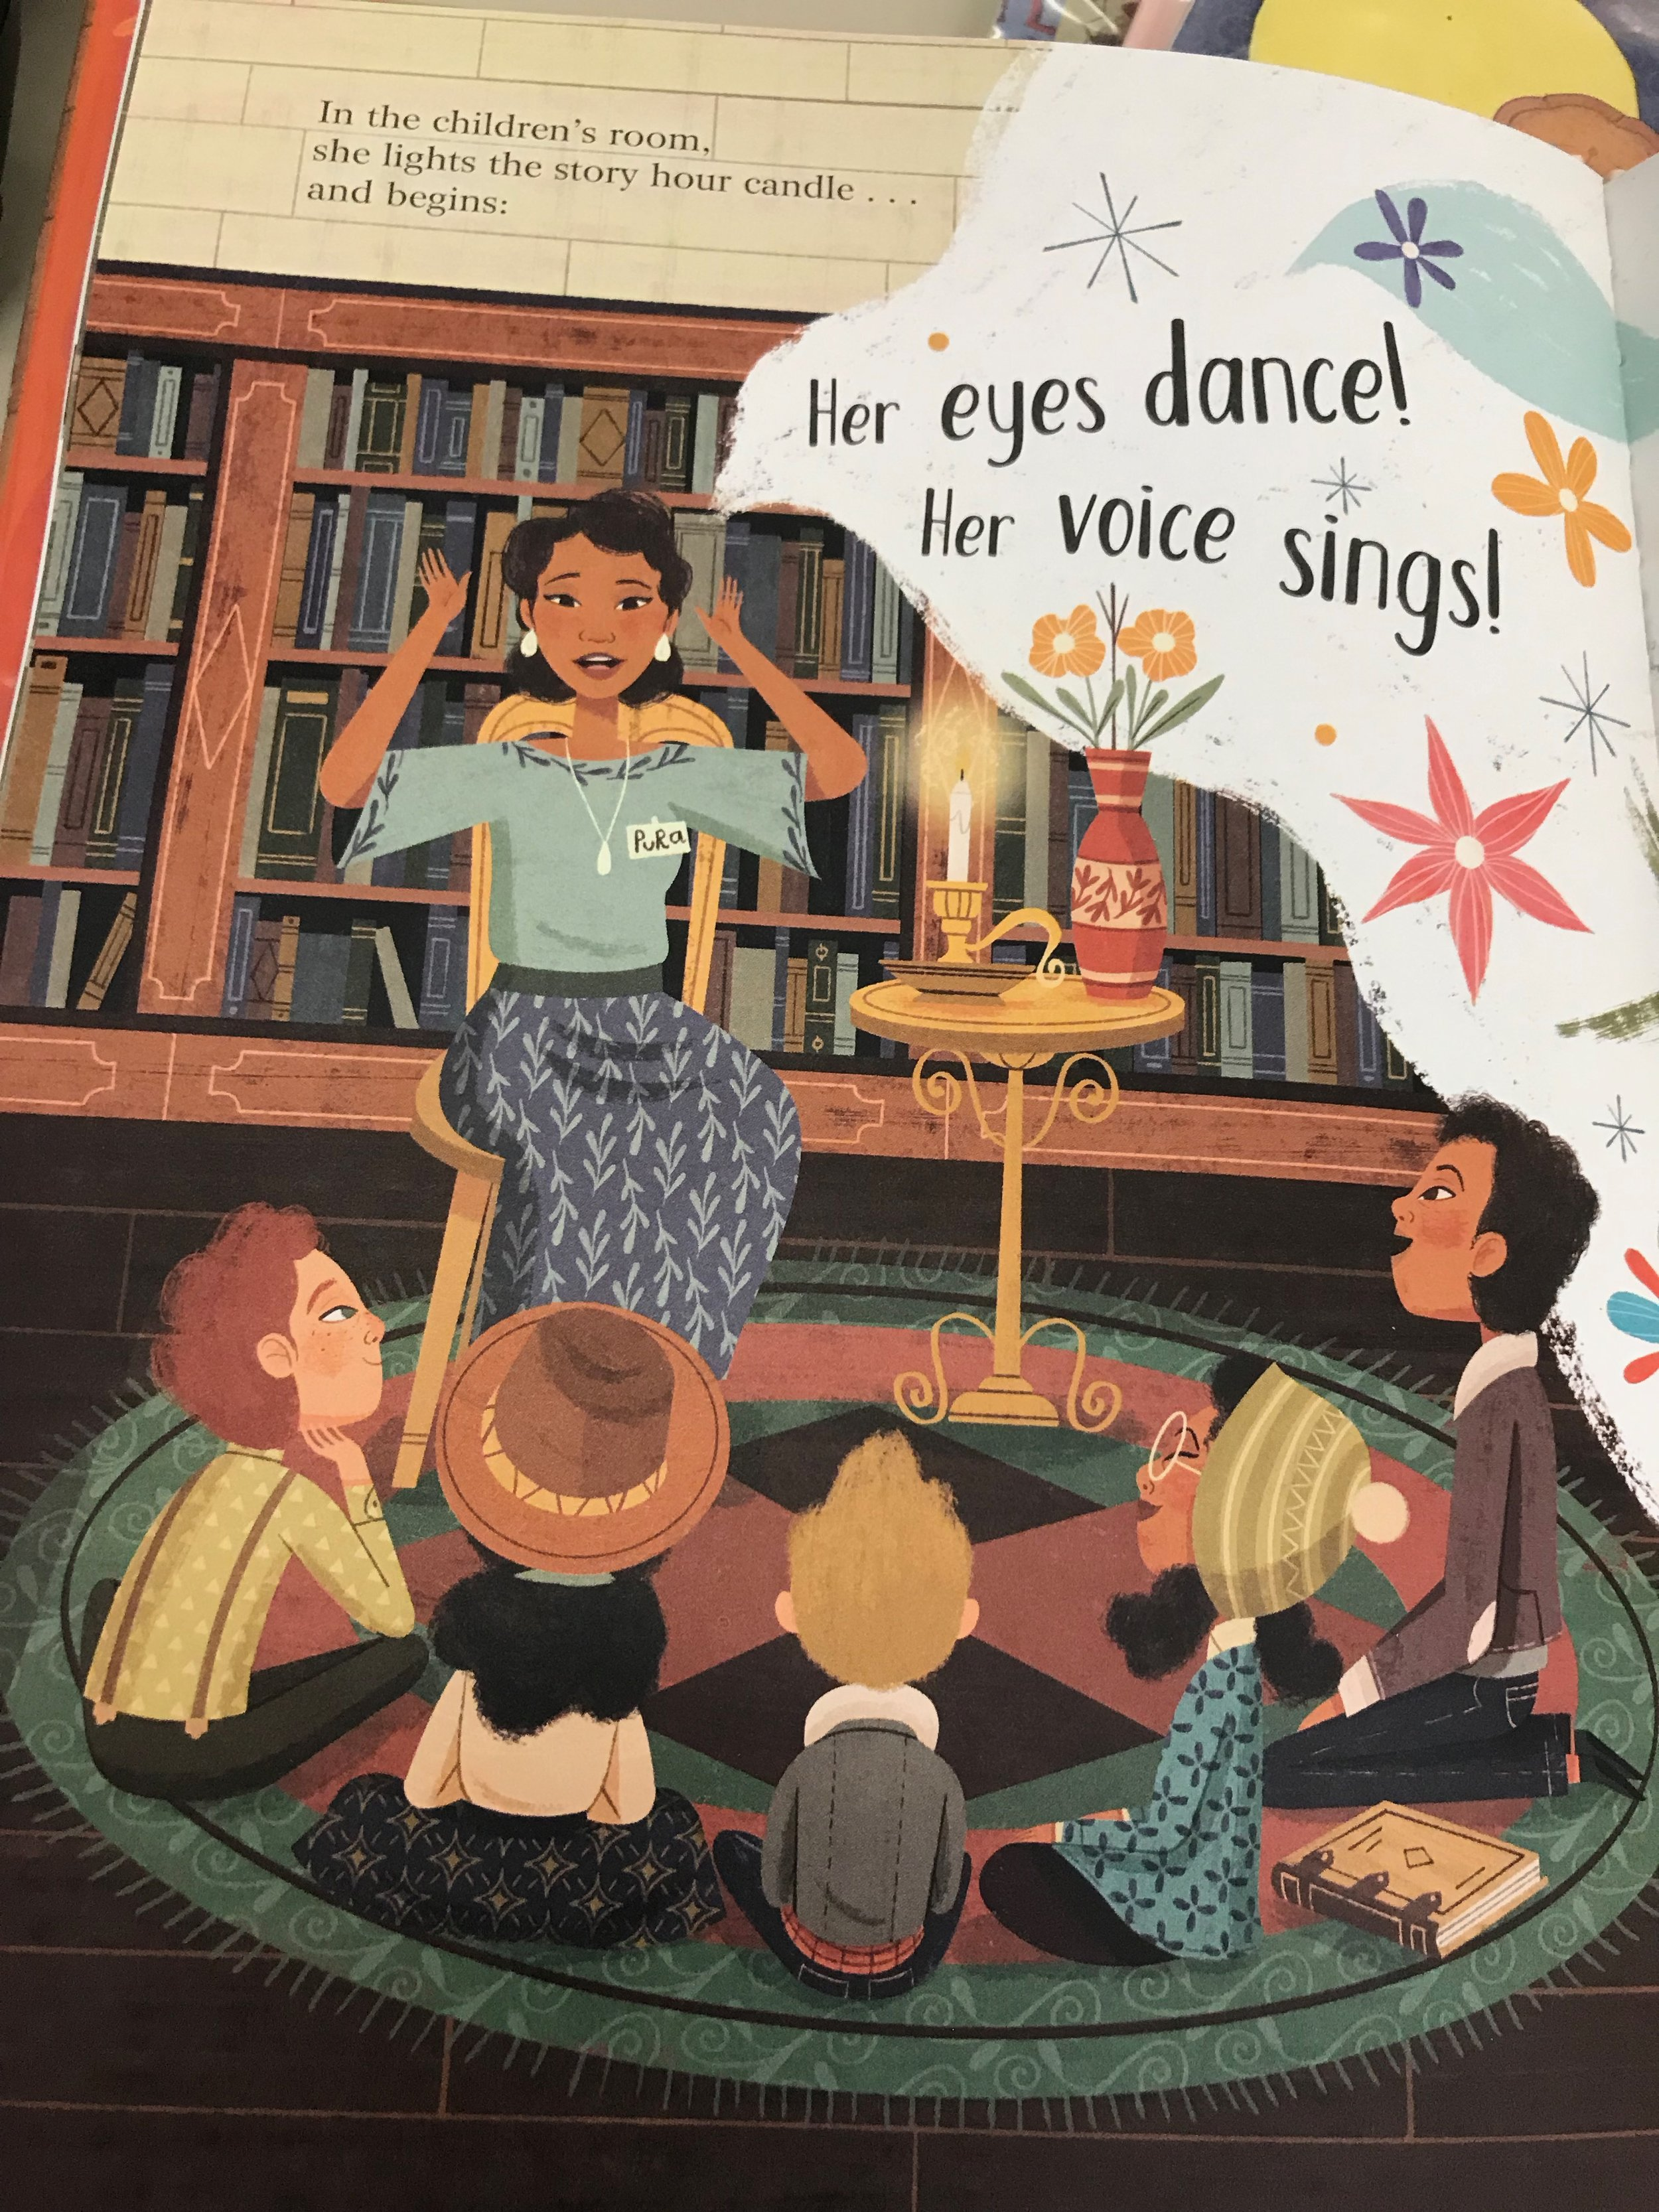 From   Planting Stories: The Life of Librarian and Storyteller Pura Belpré   by Anika Aldamuy Denise (illustrated by Paola Escobar). Published by HarperCollins 2019.